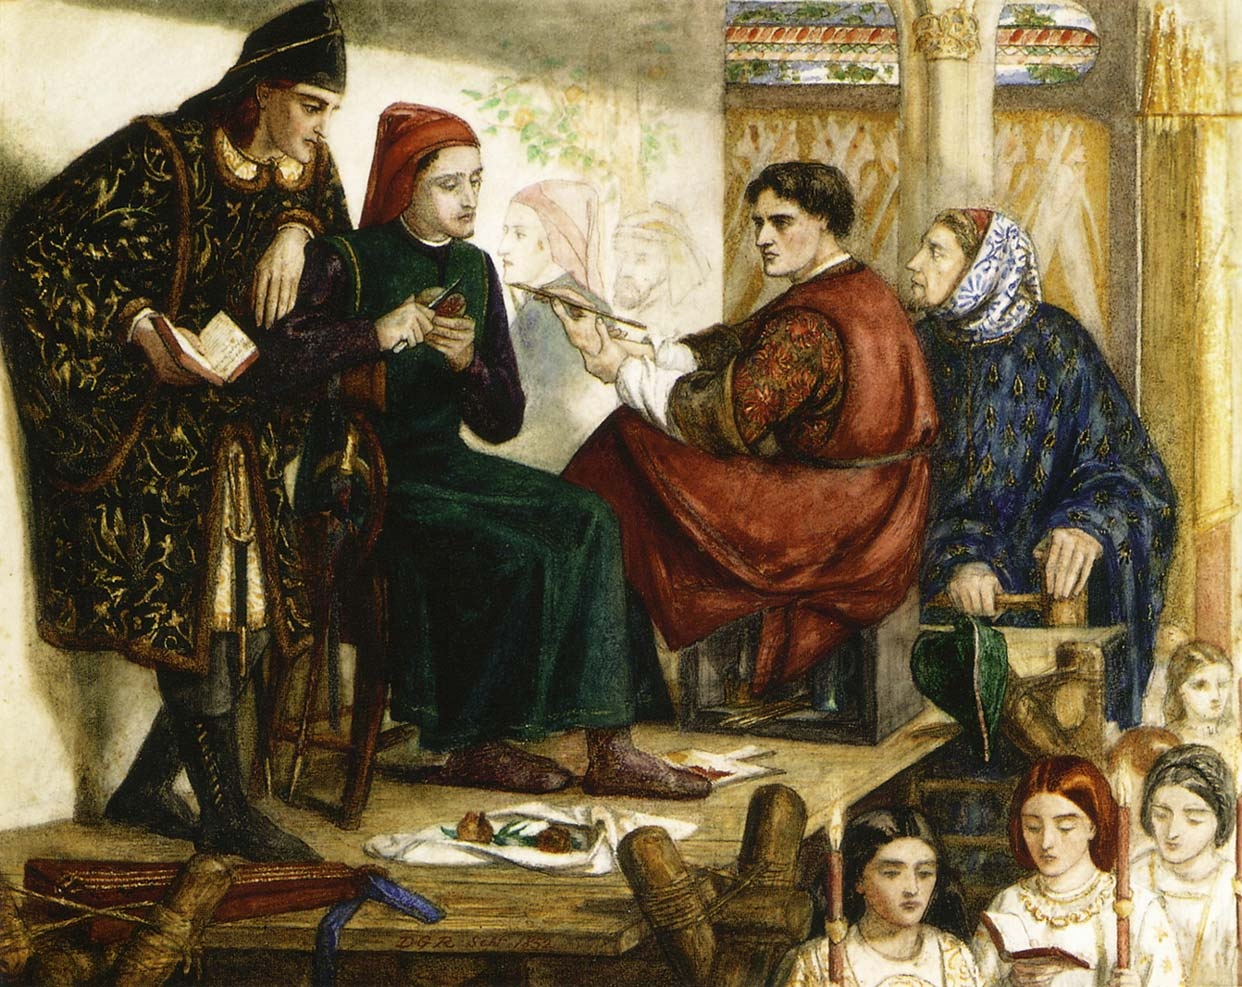 'Giotto painting the portrait of Dante', Dante Gabriel Rossetti